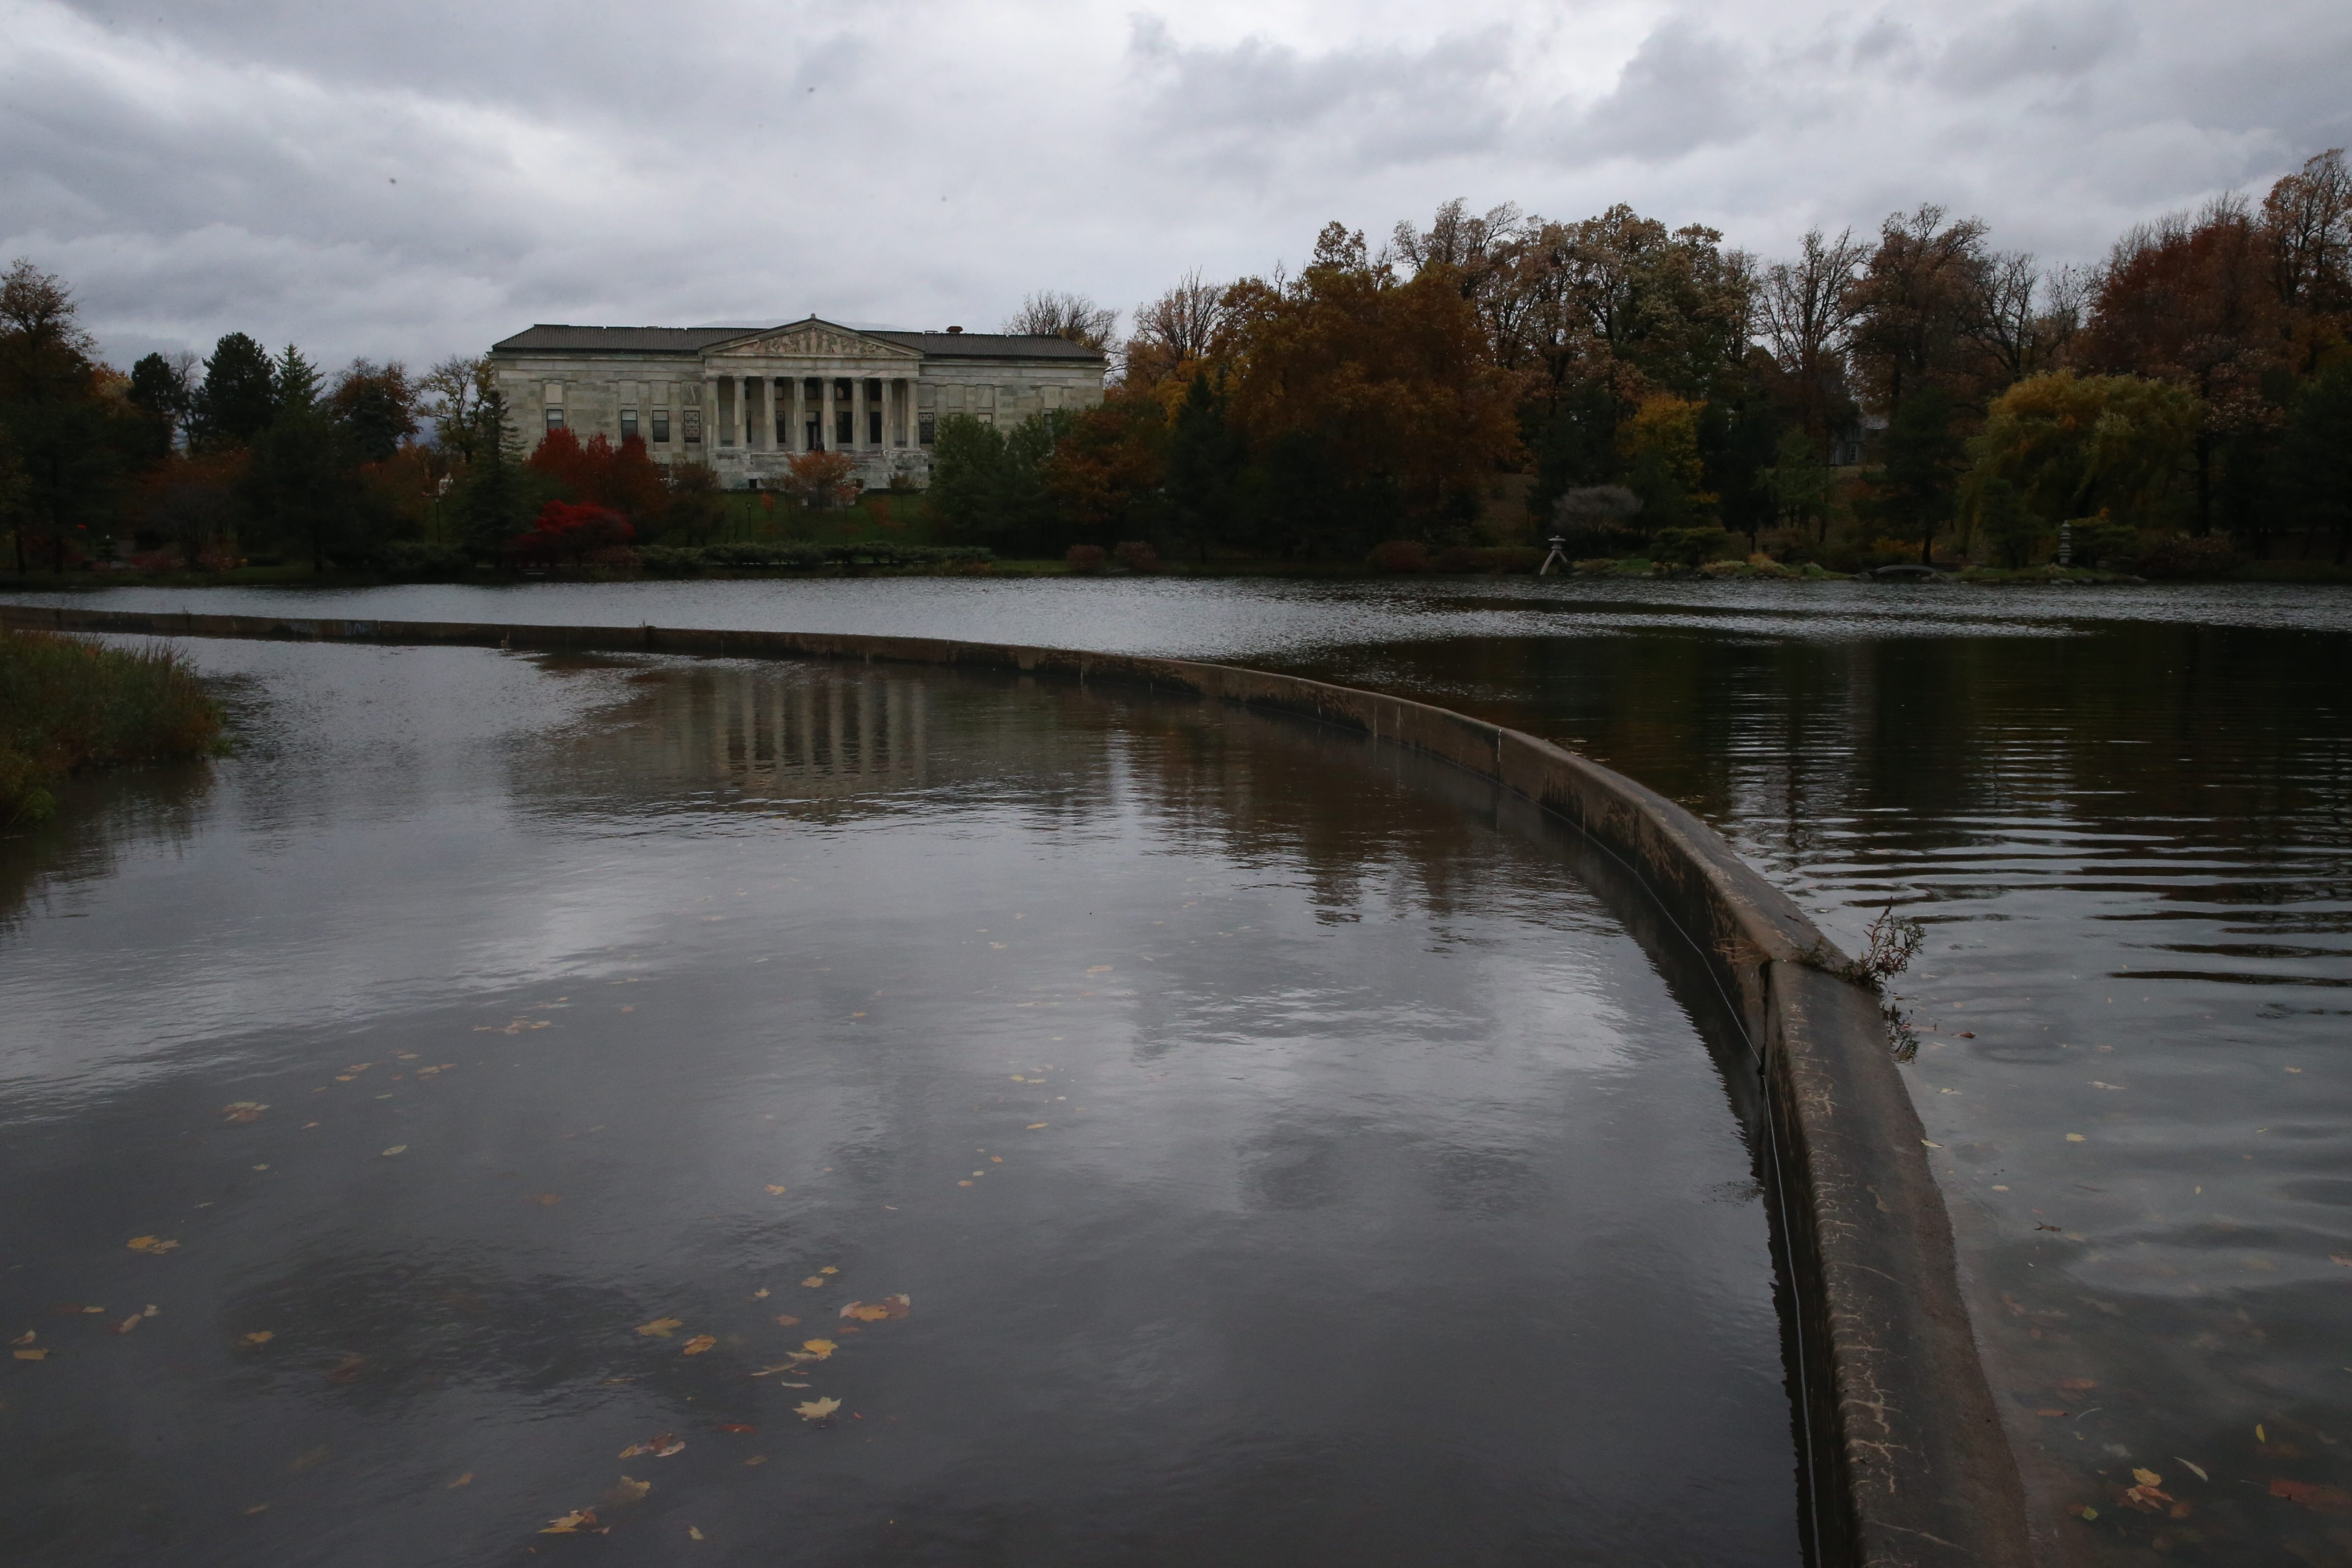 Photo by John Hickey/Buffalo NewsScajaquada Creek flows into Mirror Lake at the Buffalo History Museum, one of the connections where millions of gallons of raw sewagefrom Cheektowaga spoil some of Buffalo's most scenic areas.